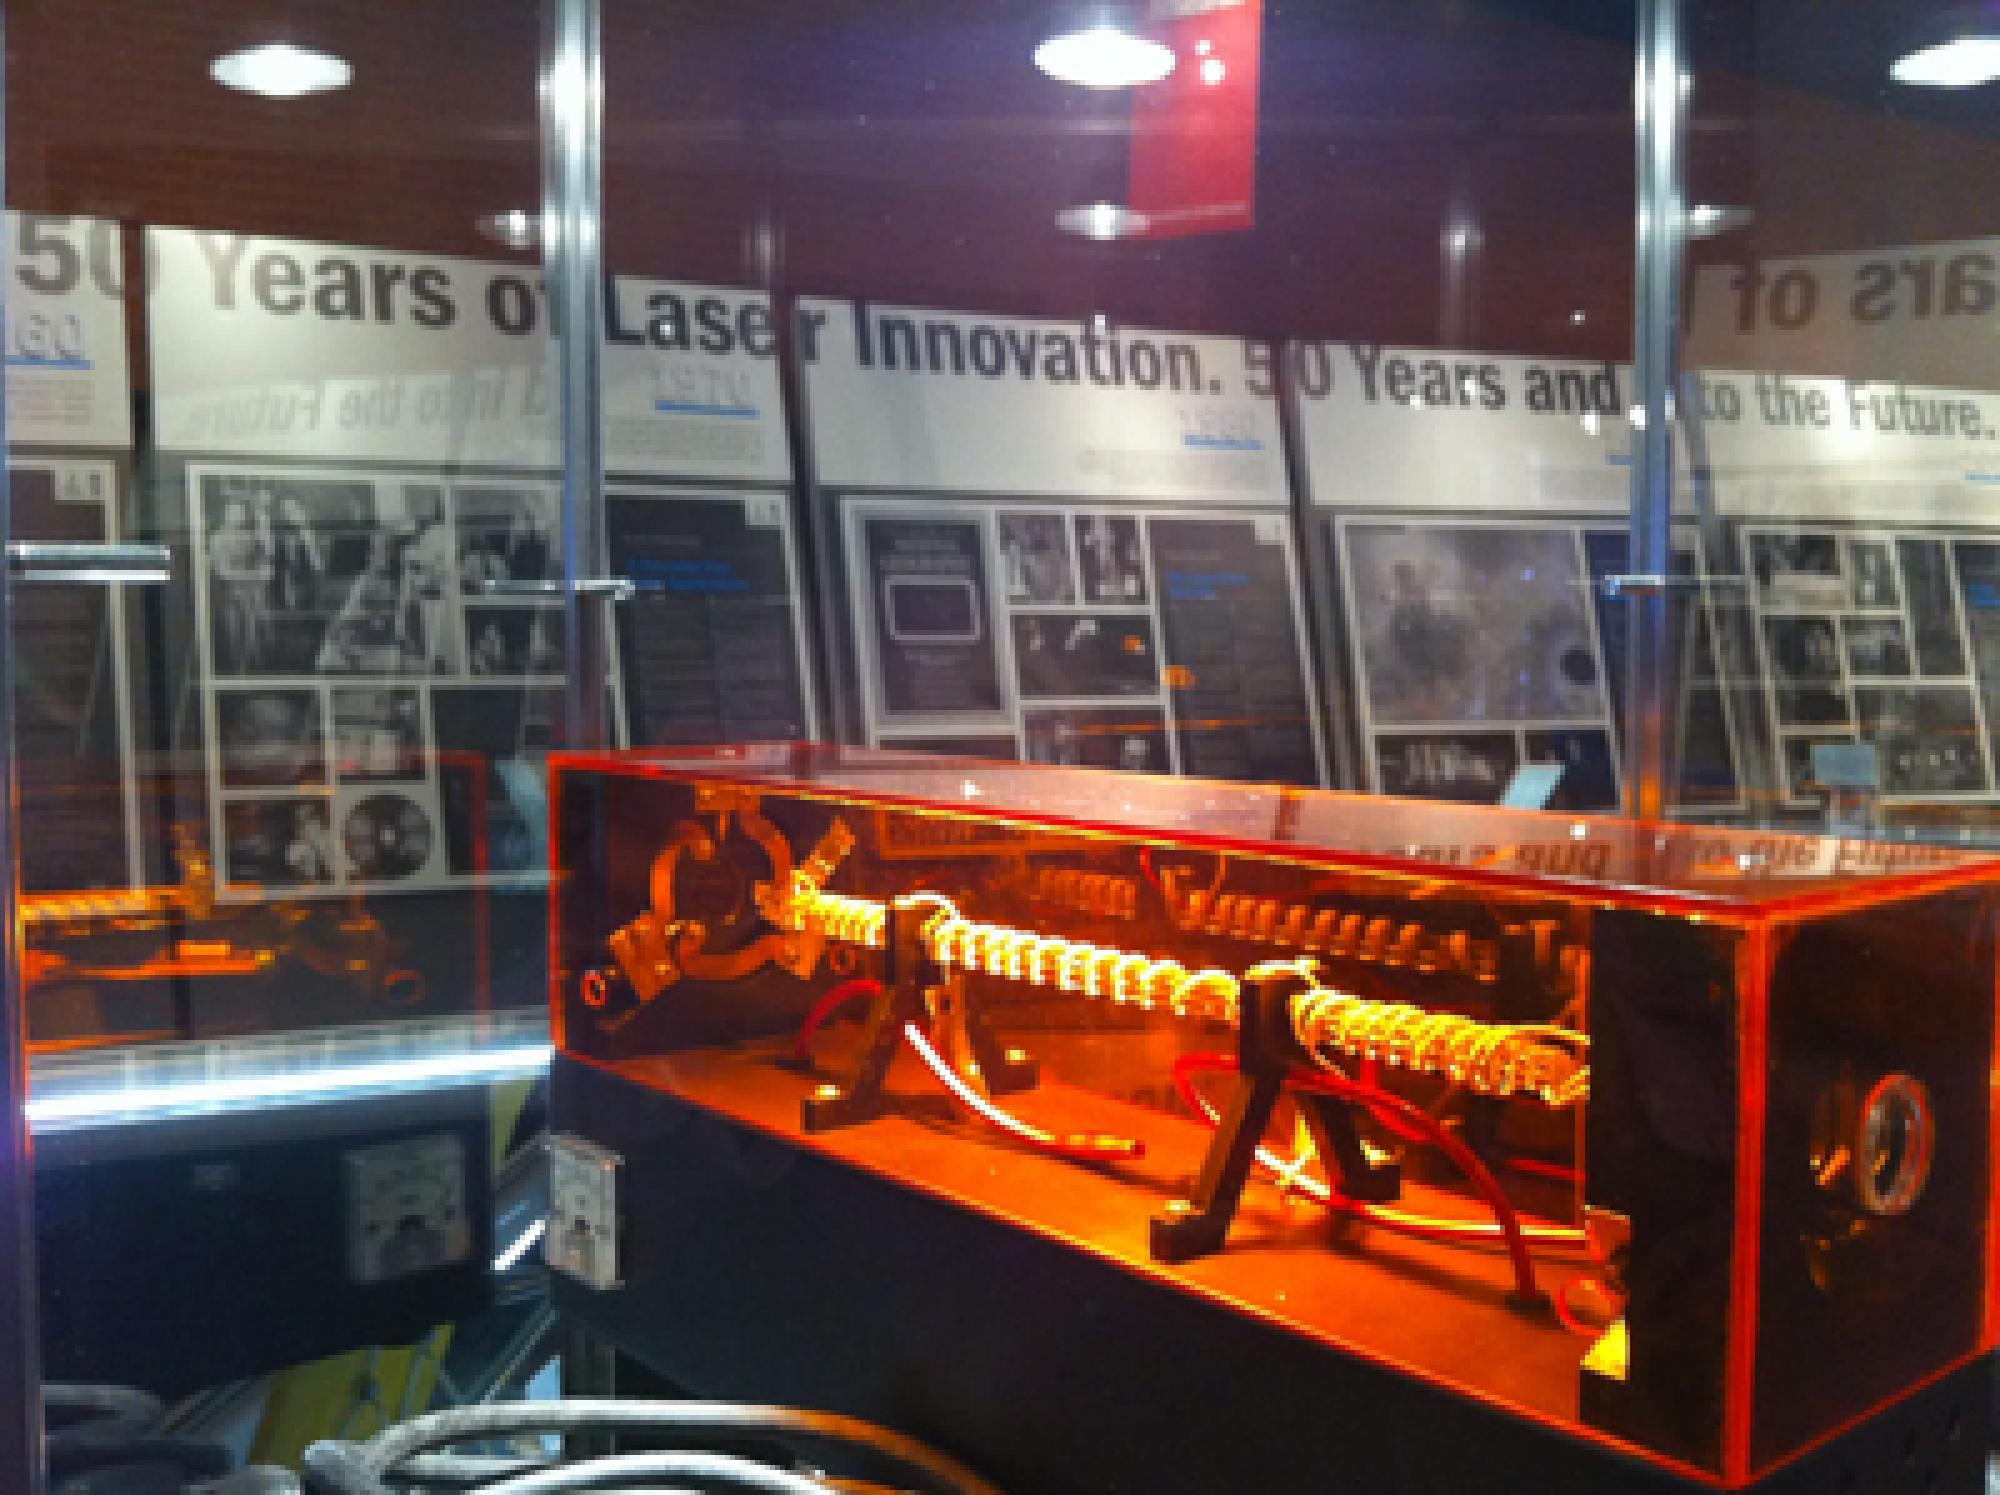 The Laser Lecture Series is part of the Laserfest Exhibit at the Flandrau Science Center.